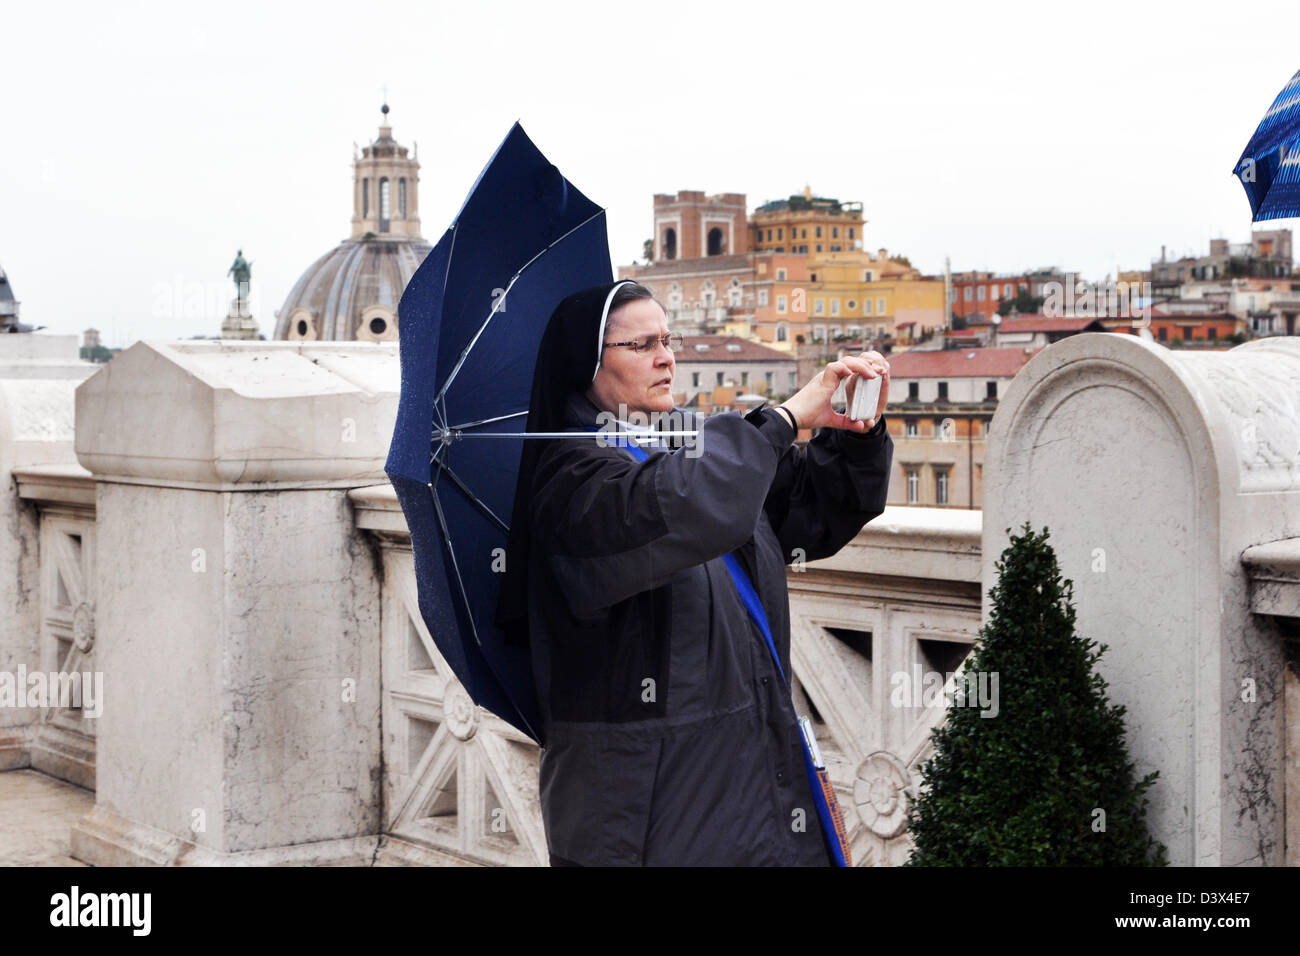 A nun takes a picture at the Capitoline Hill, Rome, Italy - Stock Image